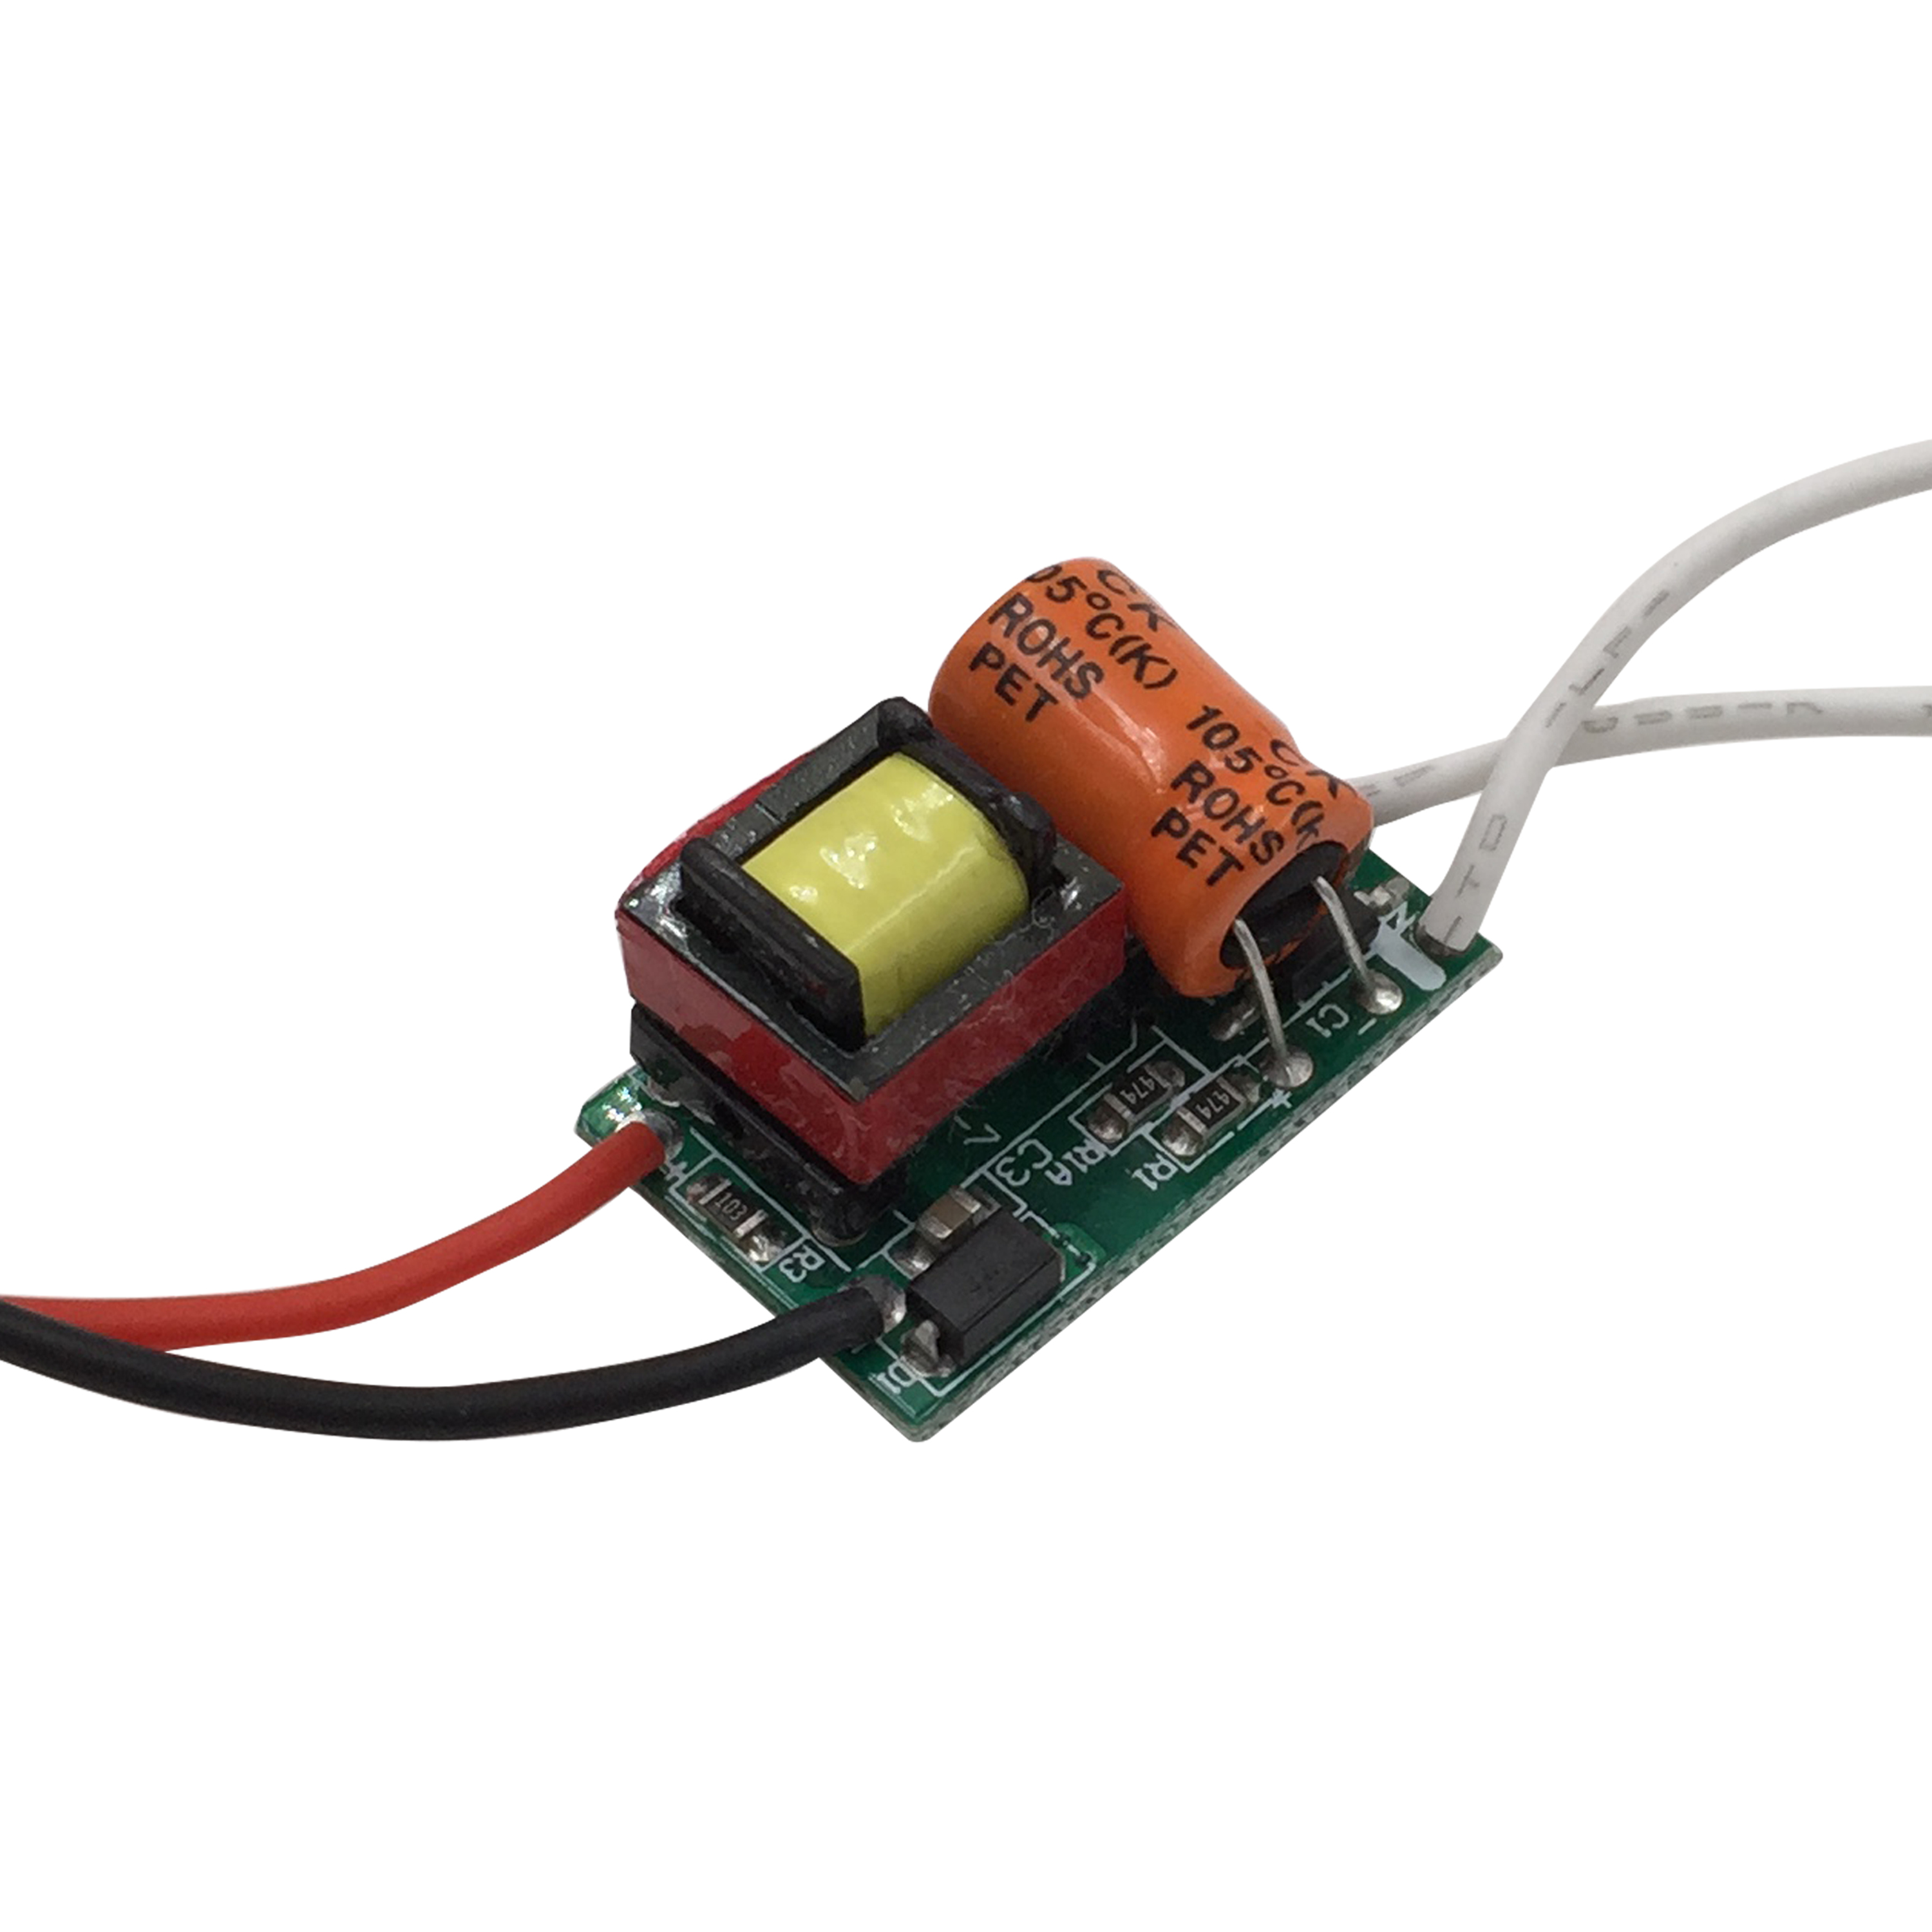 <font><b>LED</b></font> <font><b>Driver</b></font> built-in Power Supply Constant Current 280mA 300mA 3W 5W 7W <font><b>9W</b></font> 10W 12W 15W 20W 30W 36W Isolation Lighting Transformer image